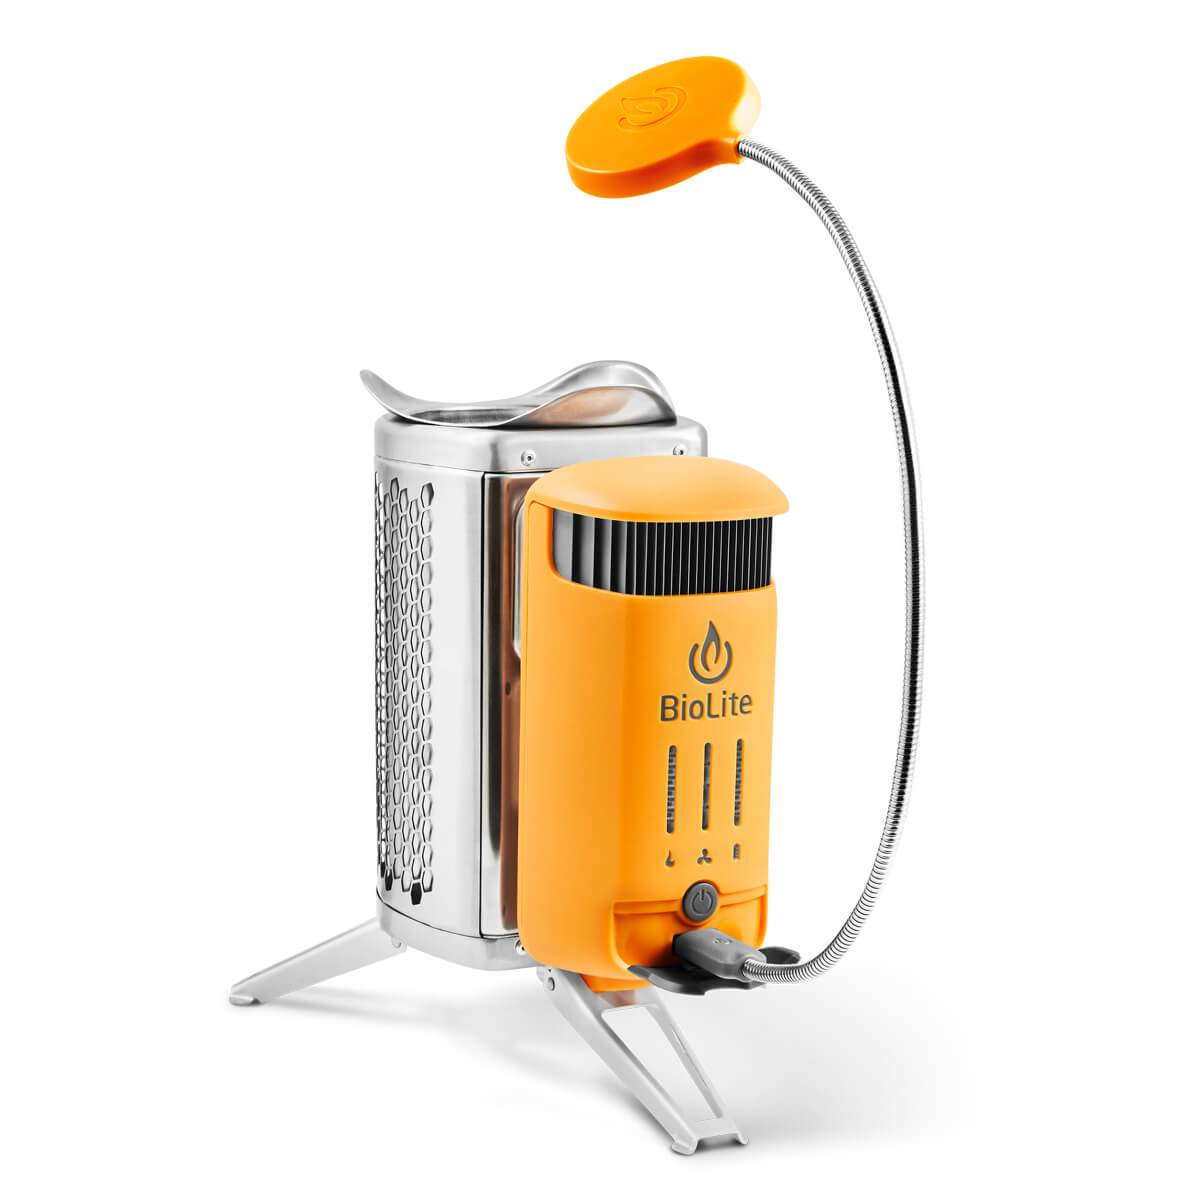 BioLite Campstove w/flex light